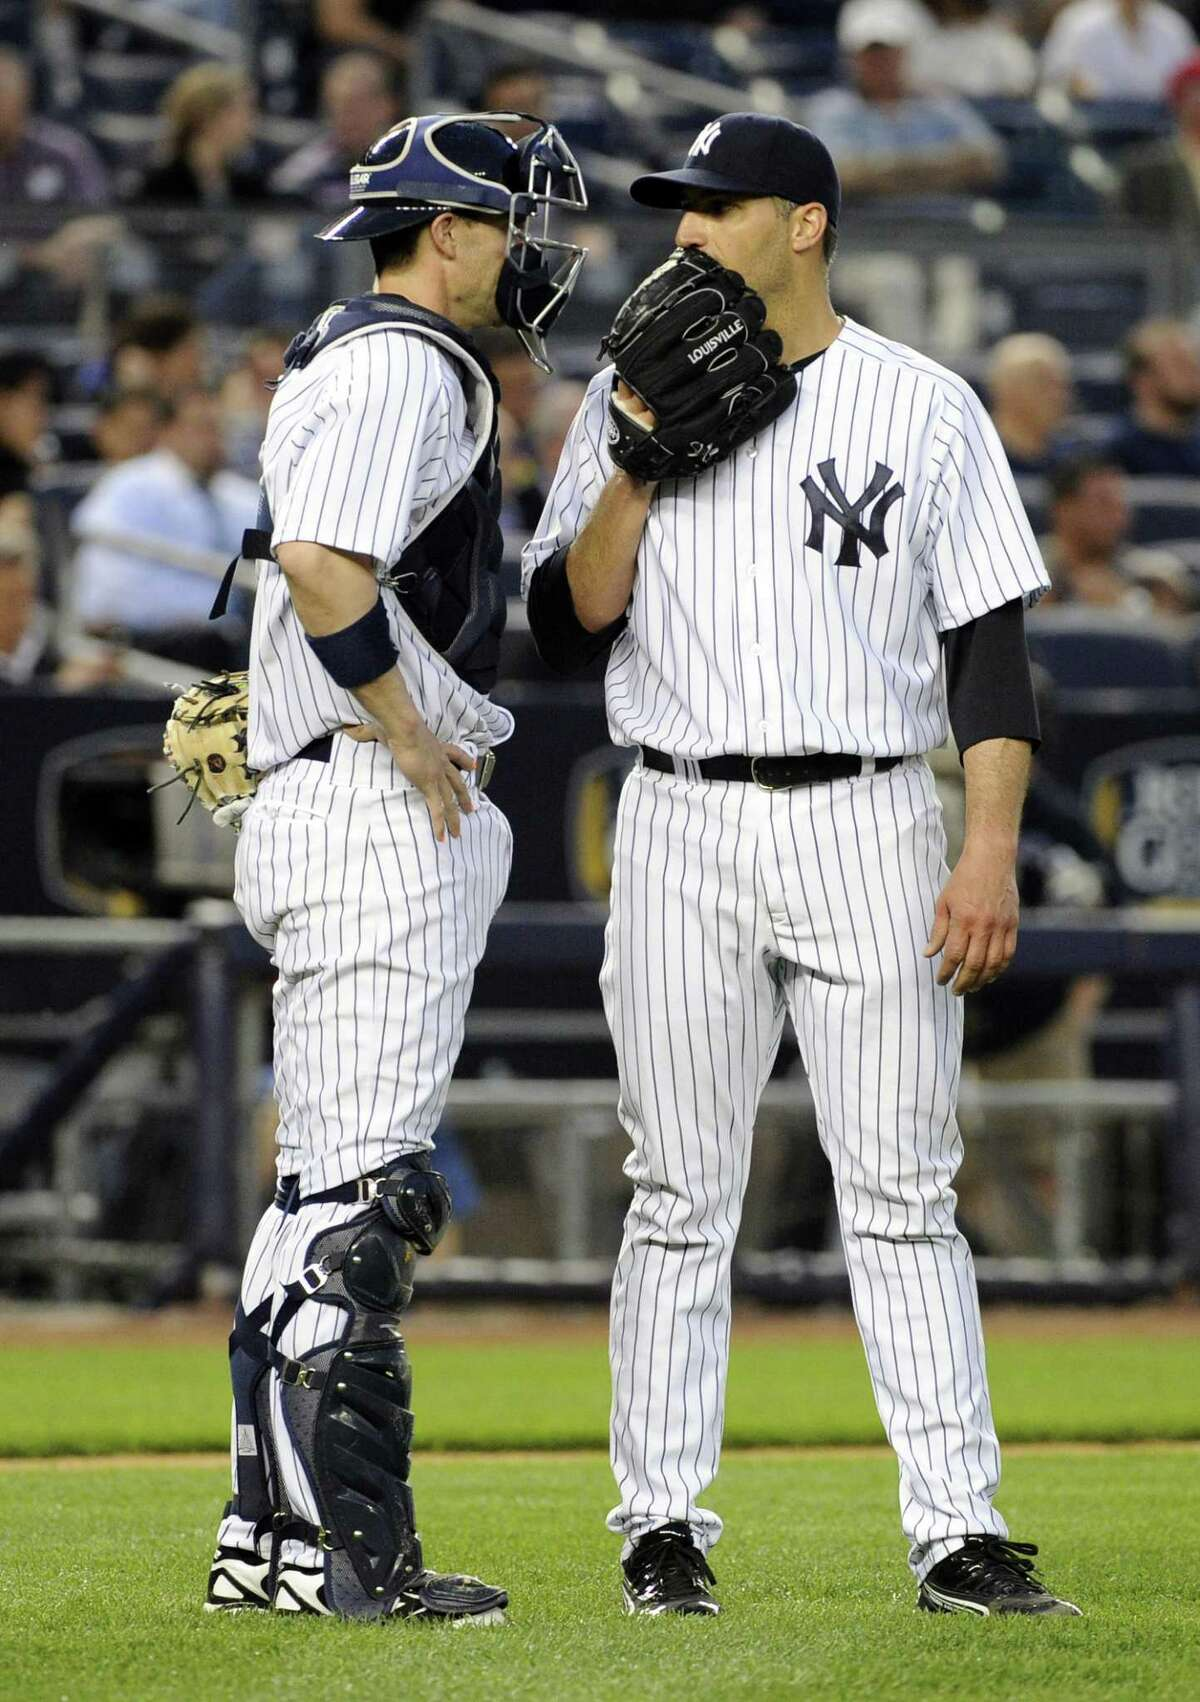 New York Yankees pitcher Andy Pettitte, right, talks with catcher Chris Stewart during the fourth inning of a baseball game against the Seattle Mariners Thursday, May 16, 2013, at Yankee Stadium in New York. (AP Photo/Bill Kostroun)